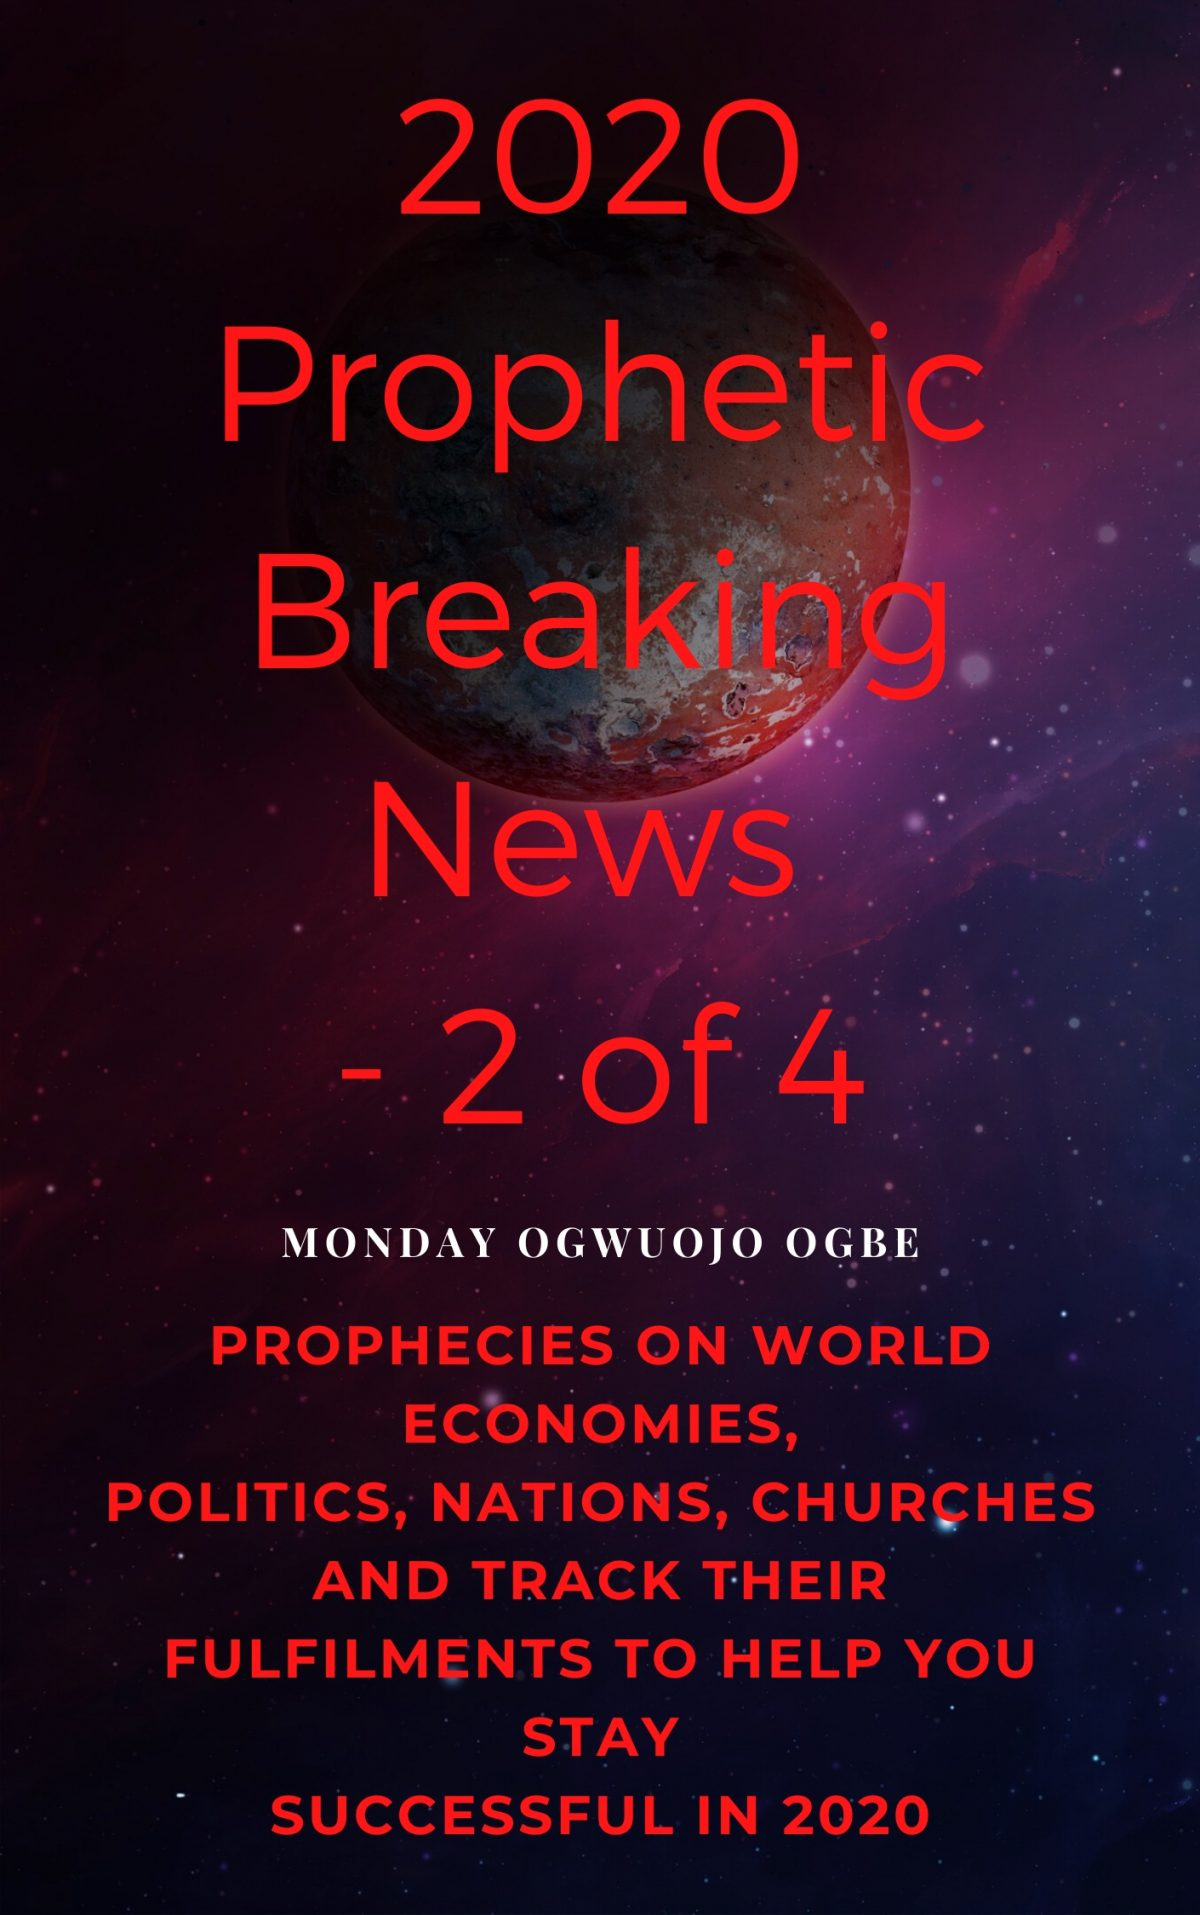 2020 Prophetic Breaking News – 2 of 4 Prophecies on World Economies, Politics, Nations, Churches and Track their Fulfilments to Help You Stay Successful in 2020